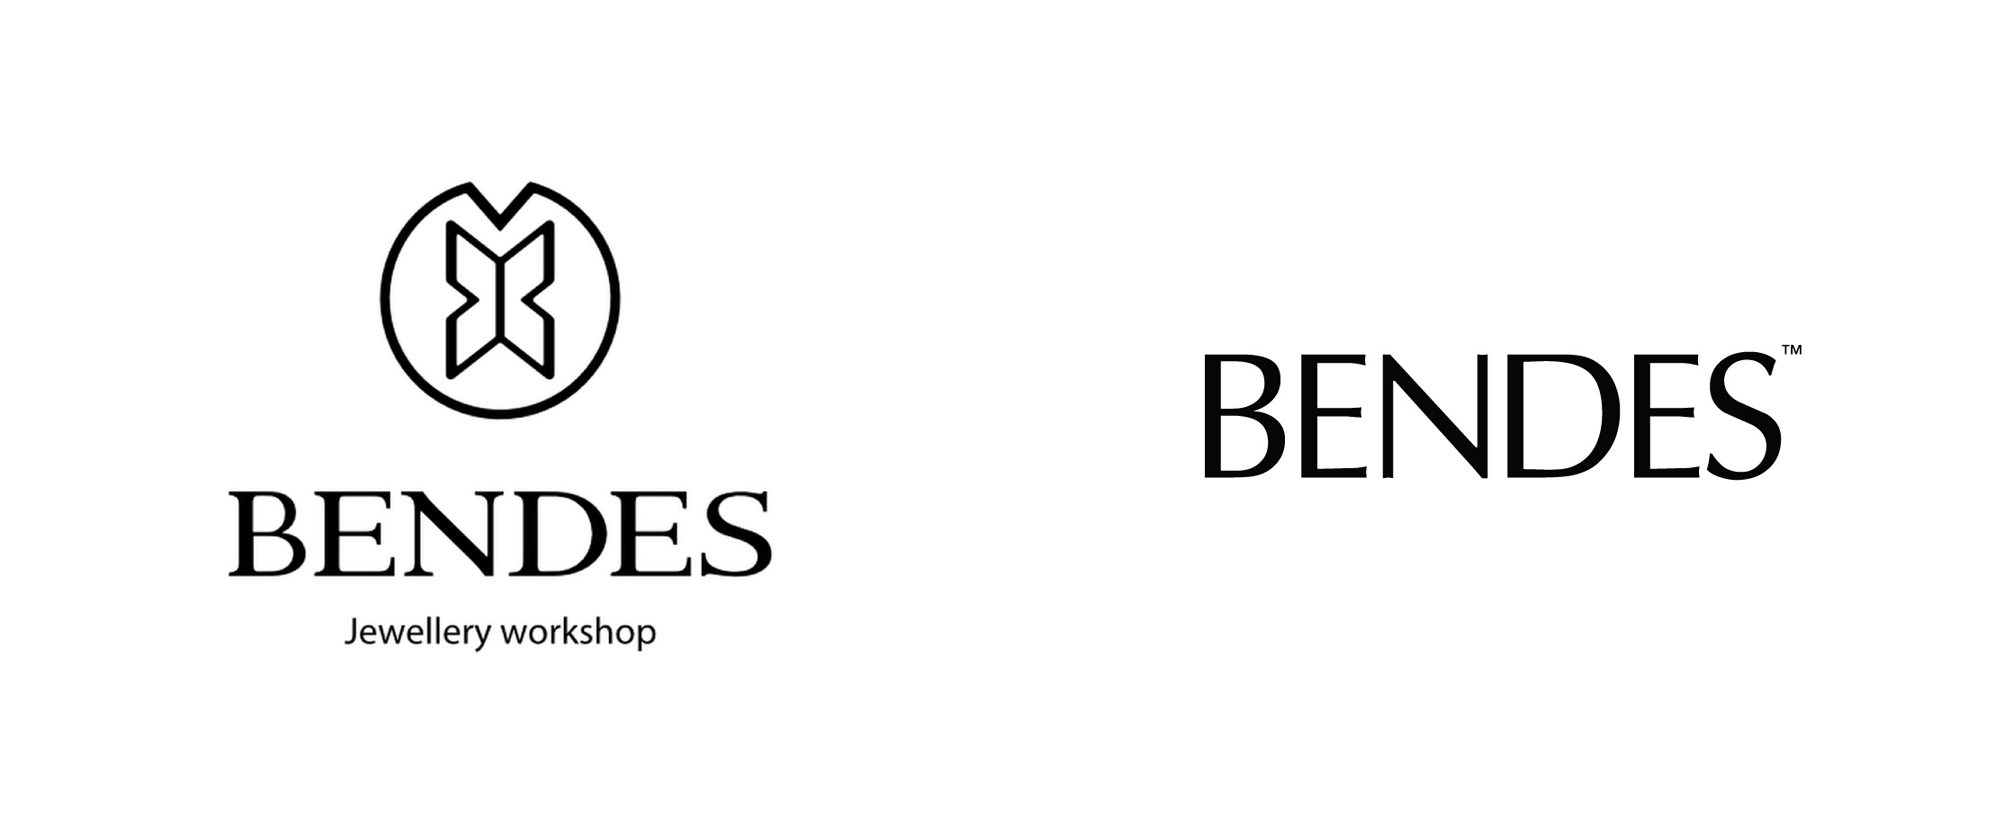 Brand New: New Logo and Identity for Bendes by ARENAS@lab.